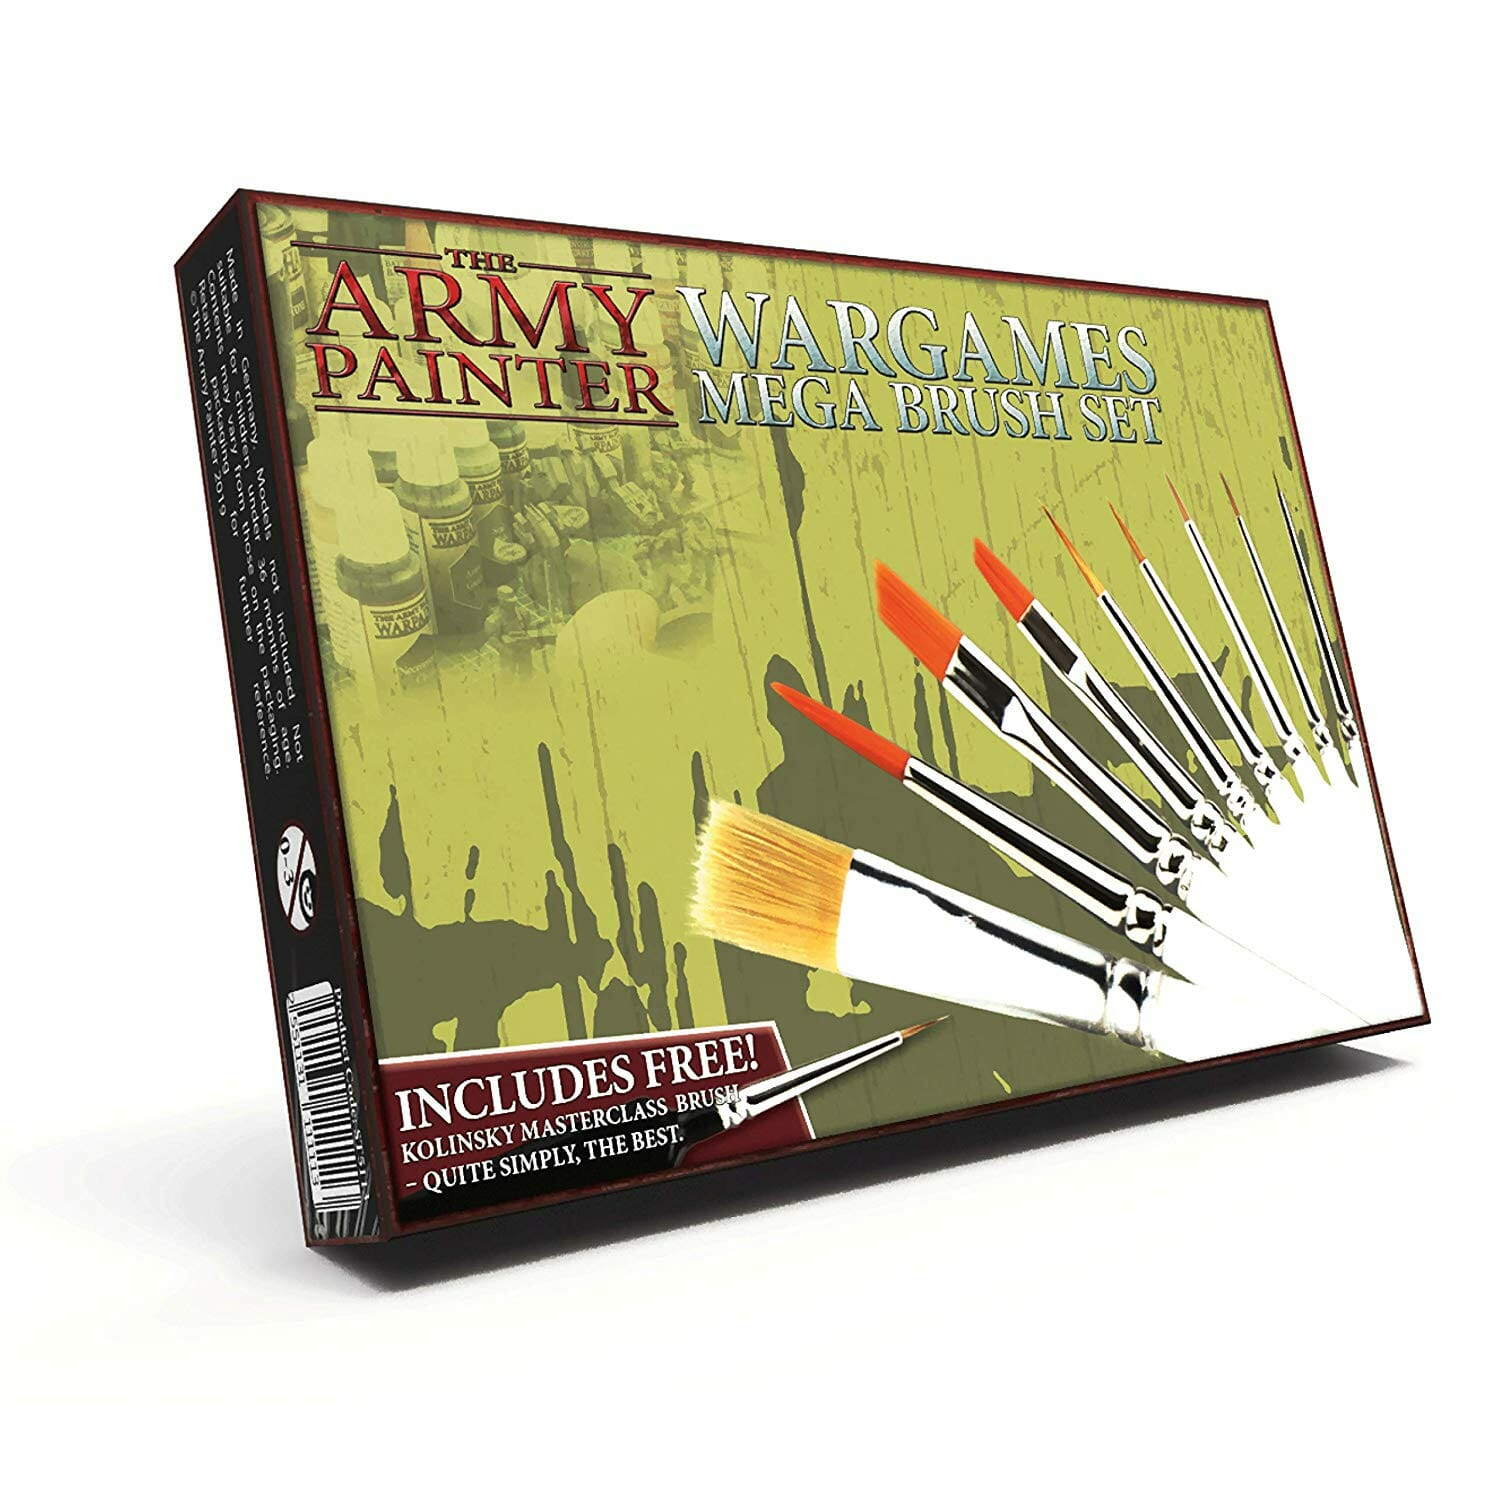 Modellers Set of 6 Extra Fine Detail Paint Brushes for Miniatures War Gaming